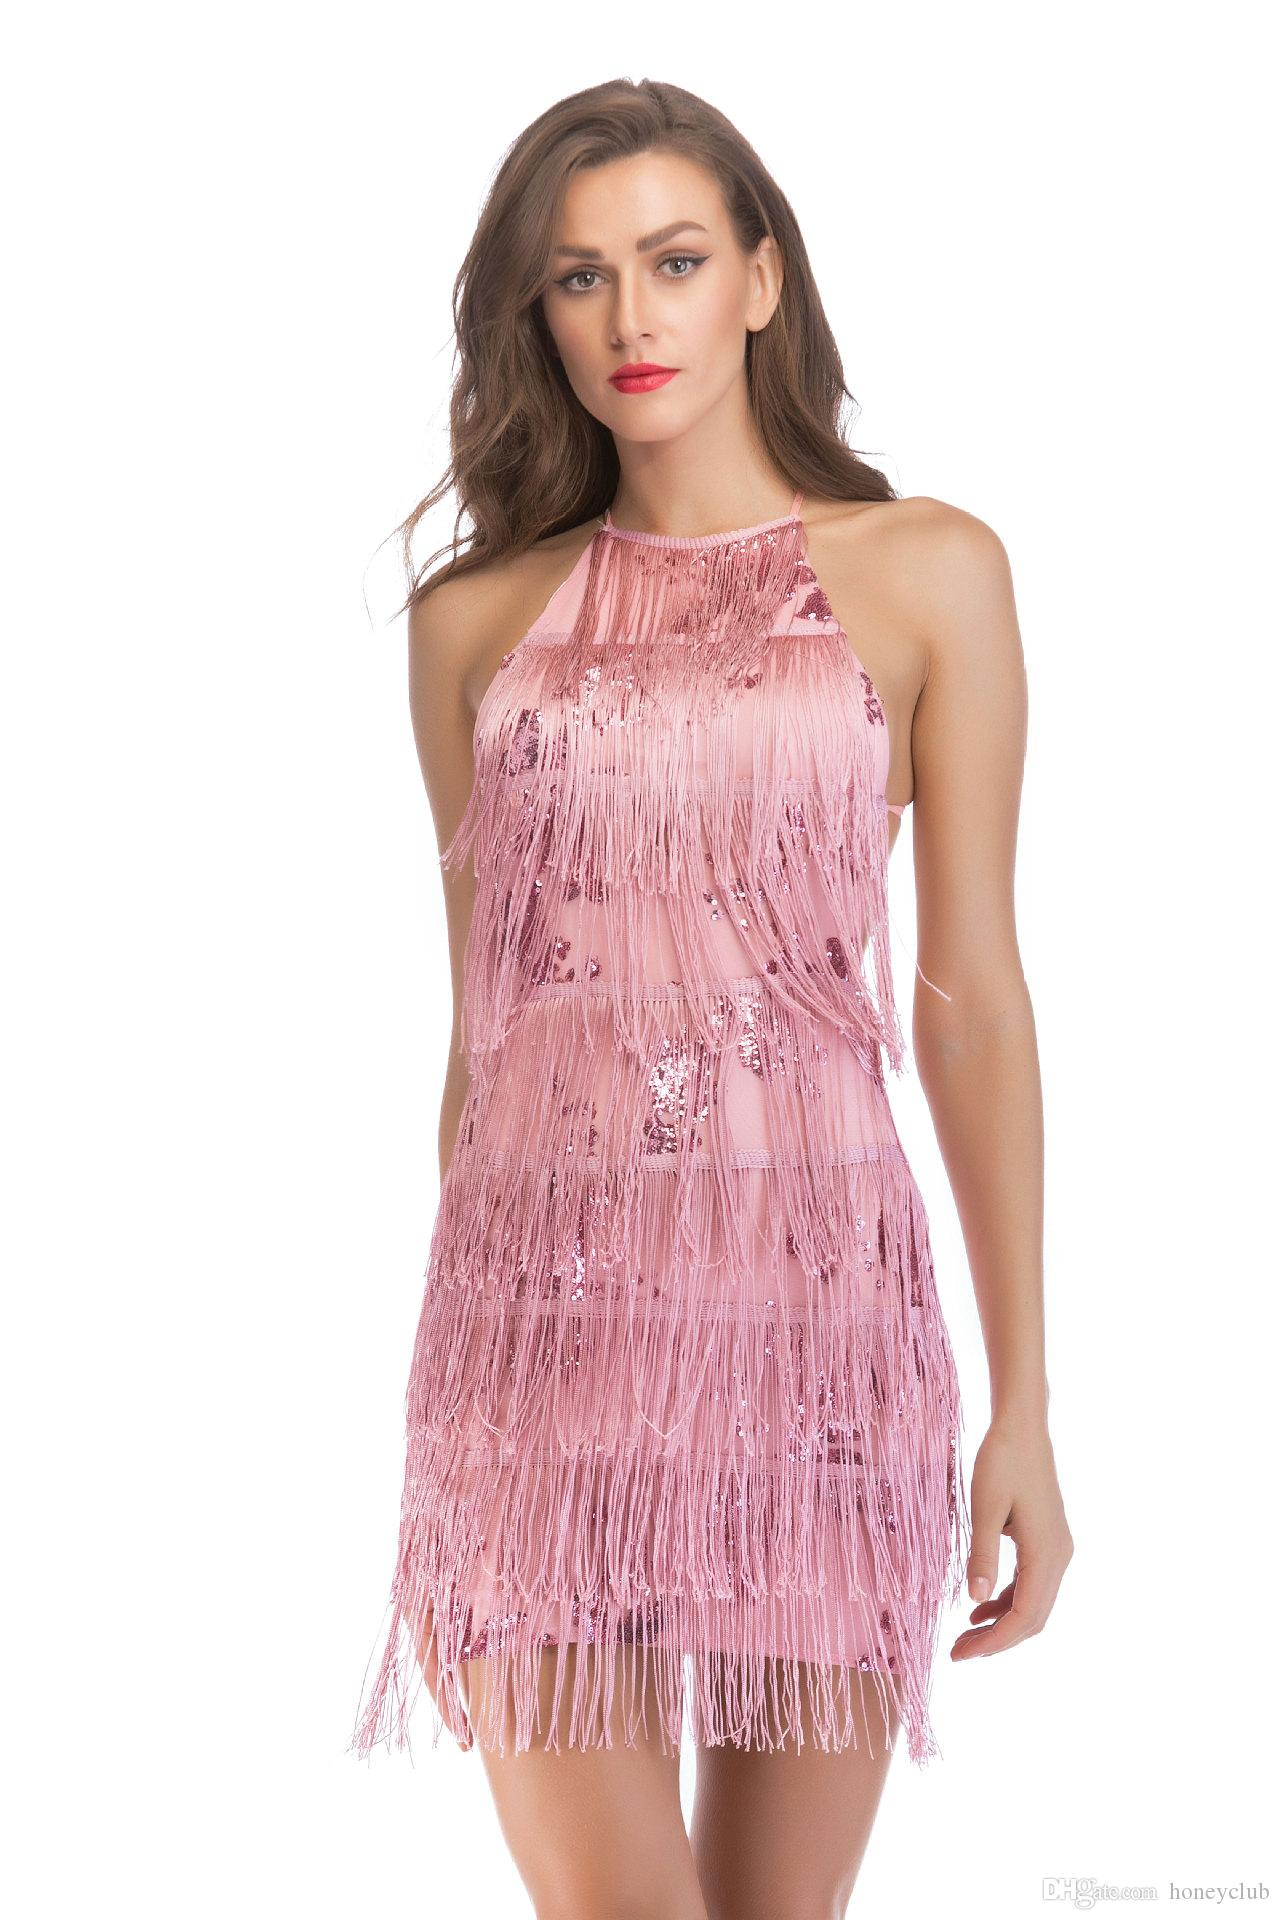 3e9e1c72c3 Sexy Red White Black Apricot Sequined Exposed Tassel Bodycon Party Dress  Elegant Sequins Embellished Fringe Sequin Halter Bandage Dress